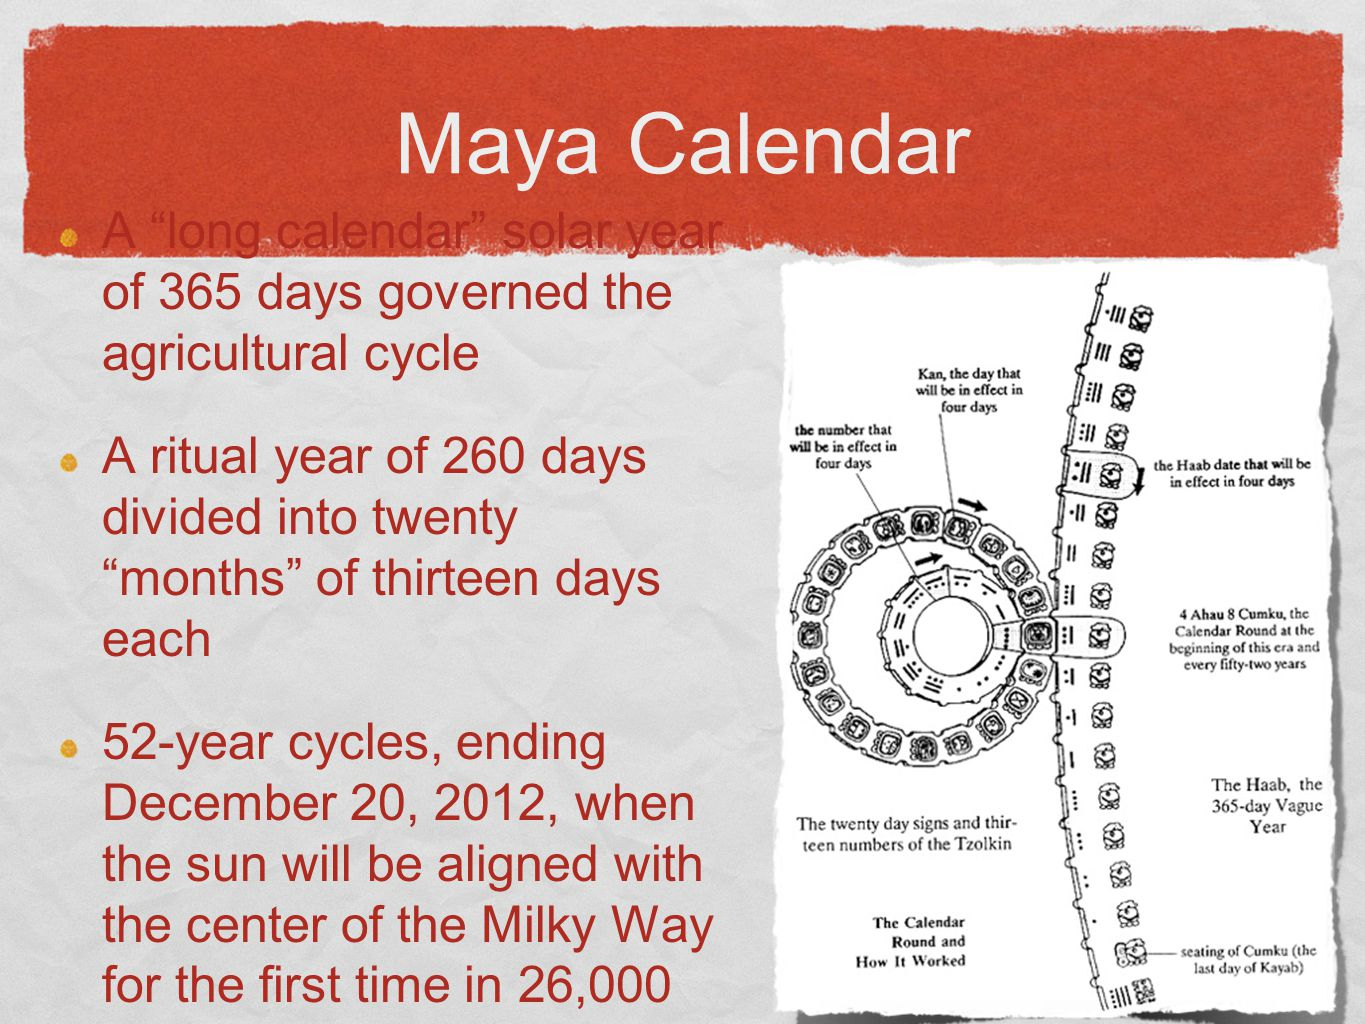 """Maya Calendar A """"long calendar"""" solar year of 365 days governed the agricultural cycle A ritual year of 260 days divided into twenty """"months"""" of thirt"""